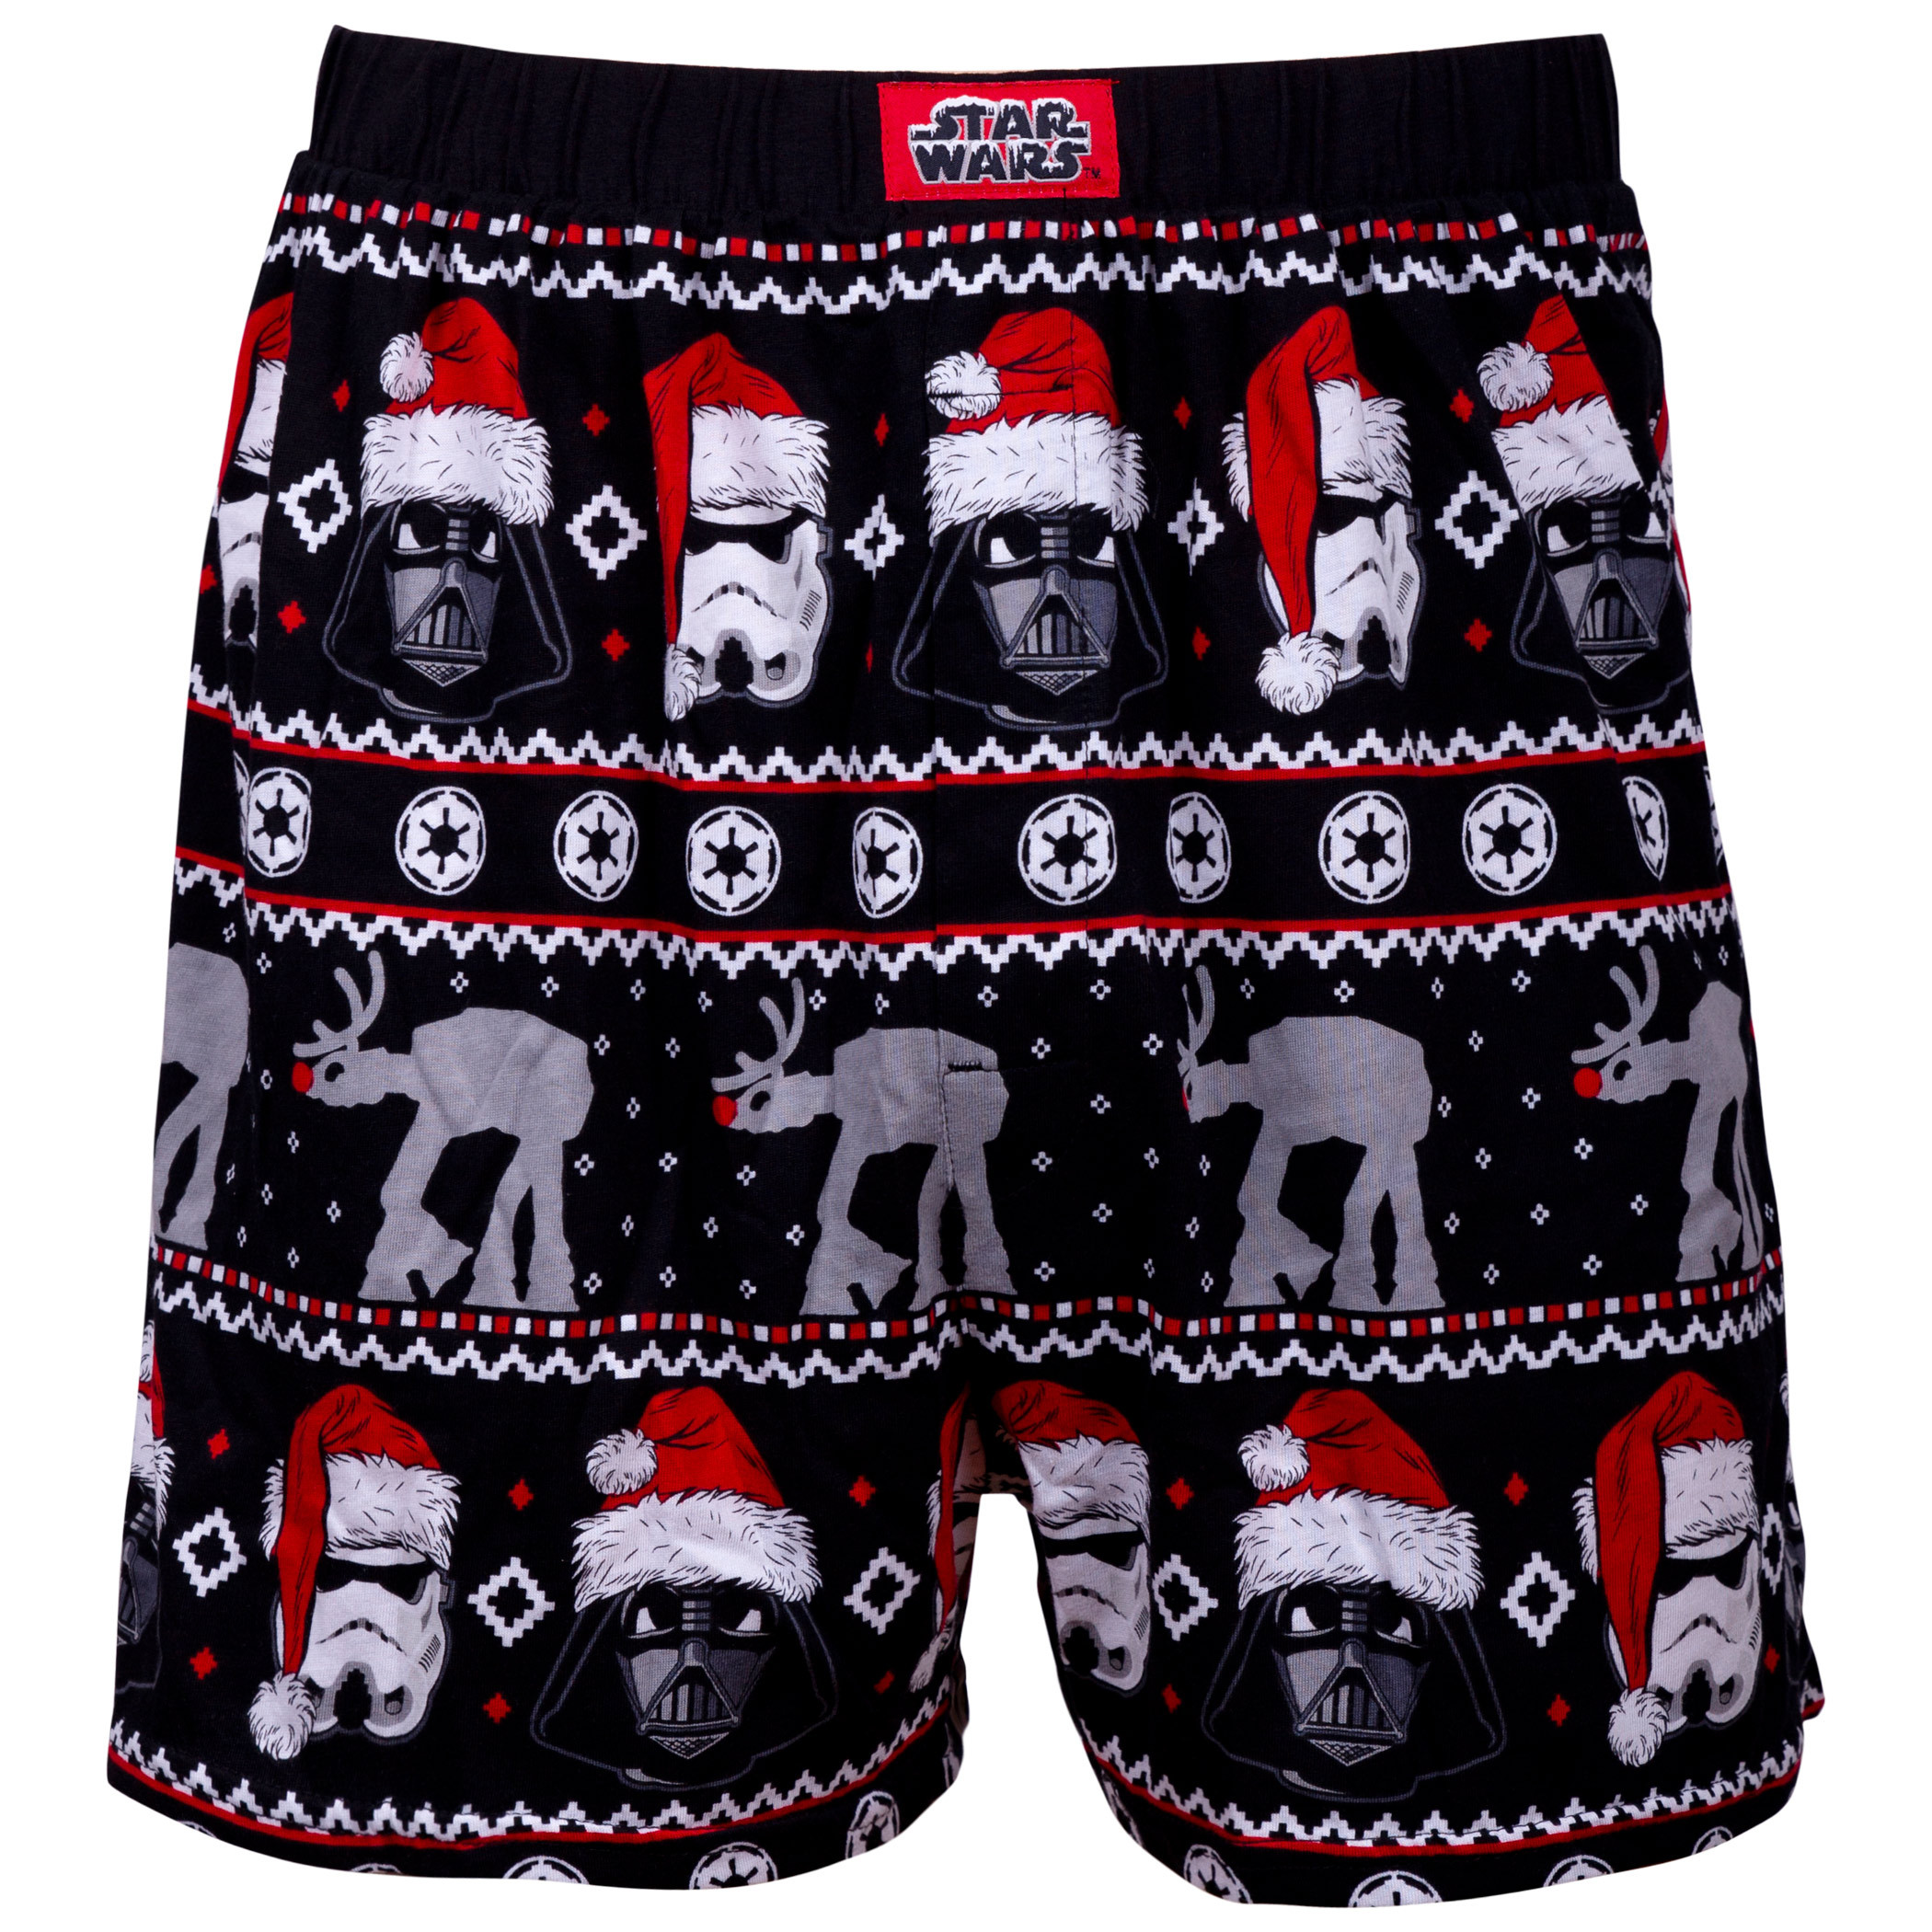 Star Wars Empire Christmas Cheer Boxers